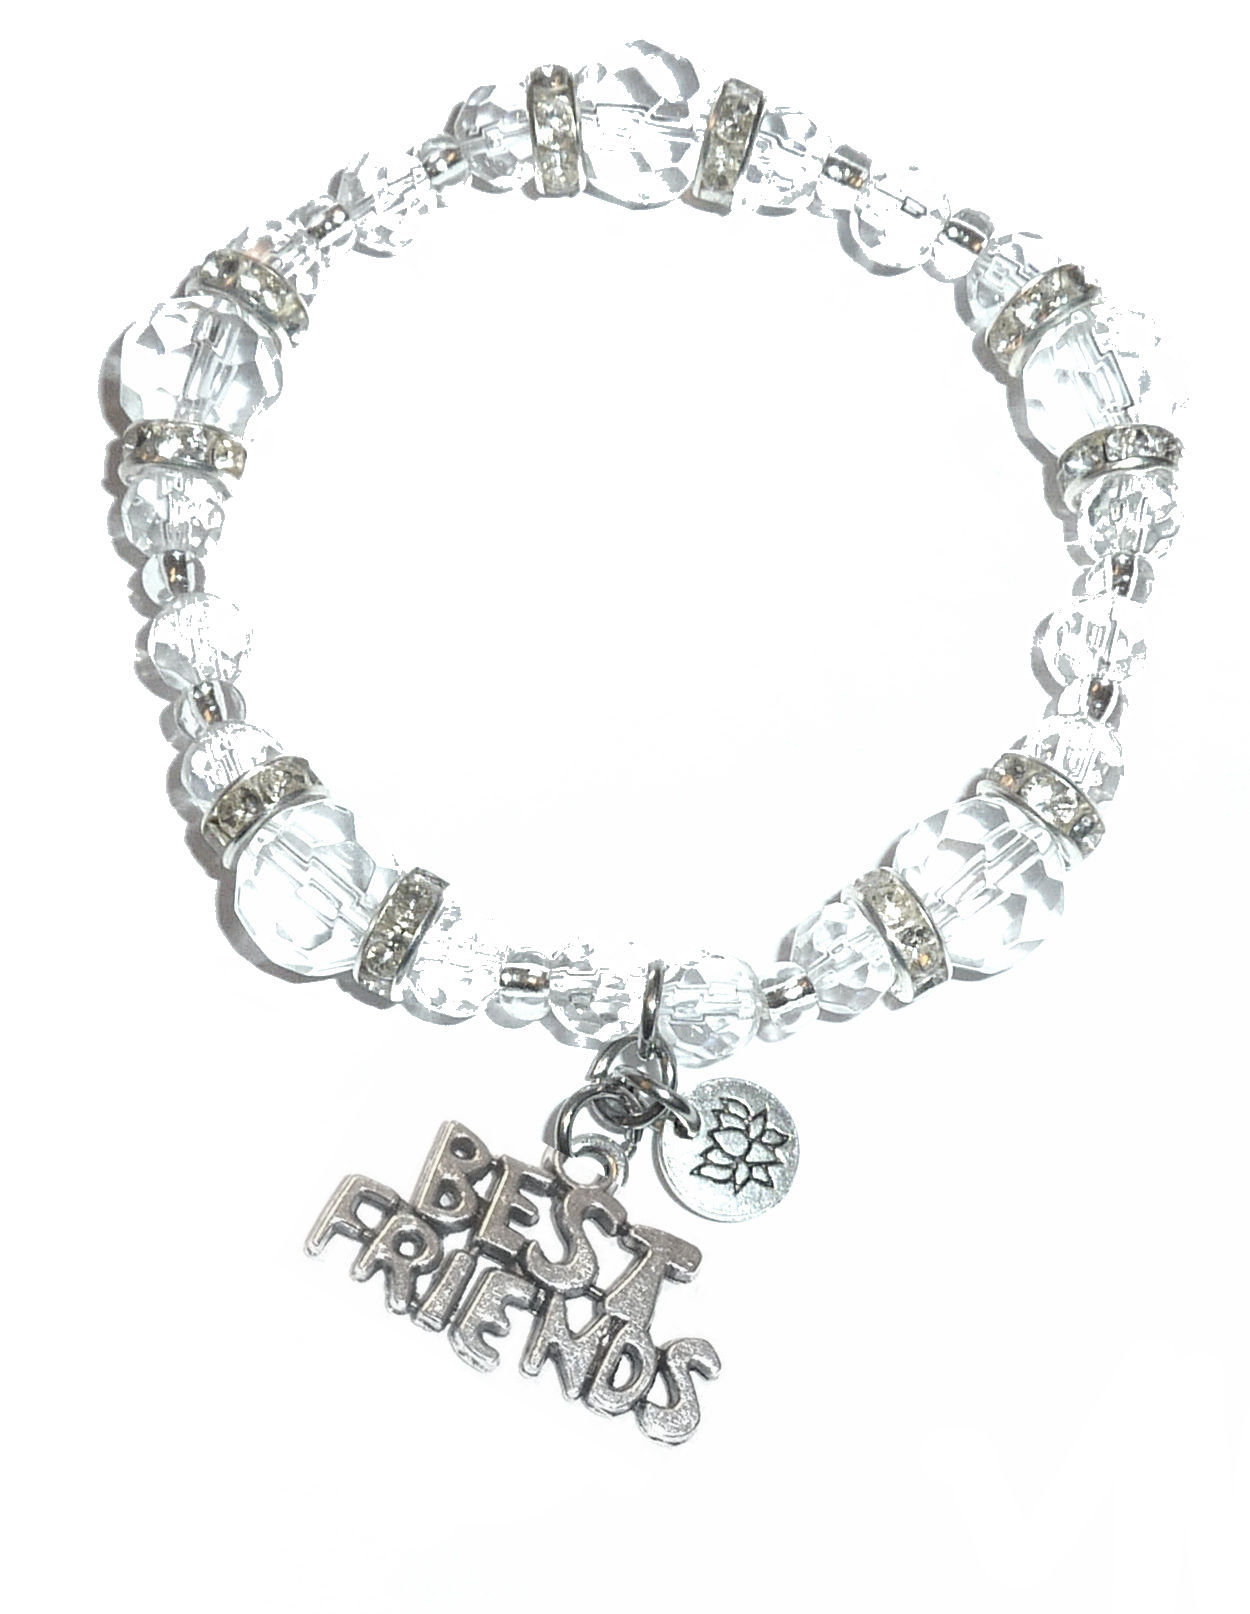 Best Friends Charm Bracelet Hidden